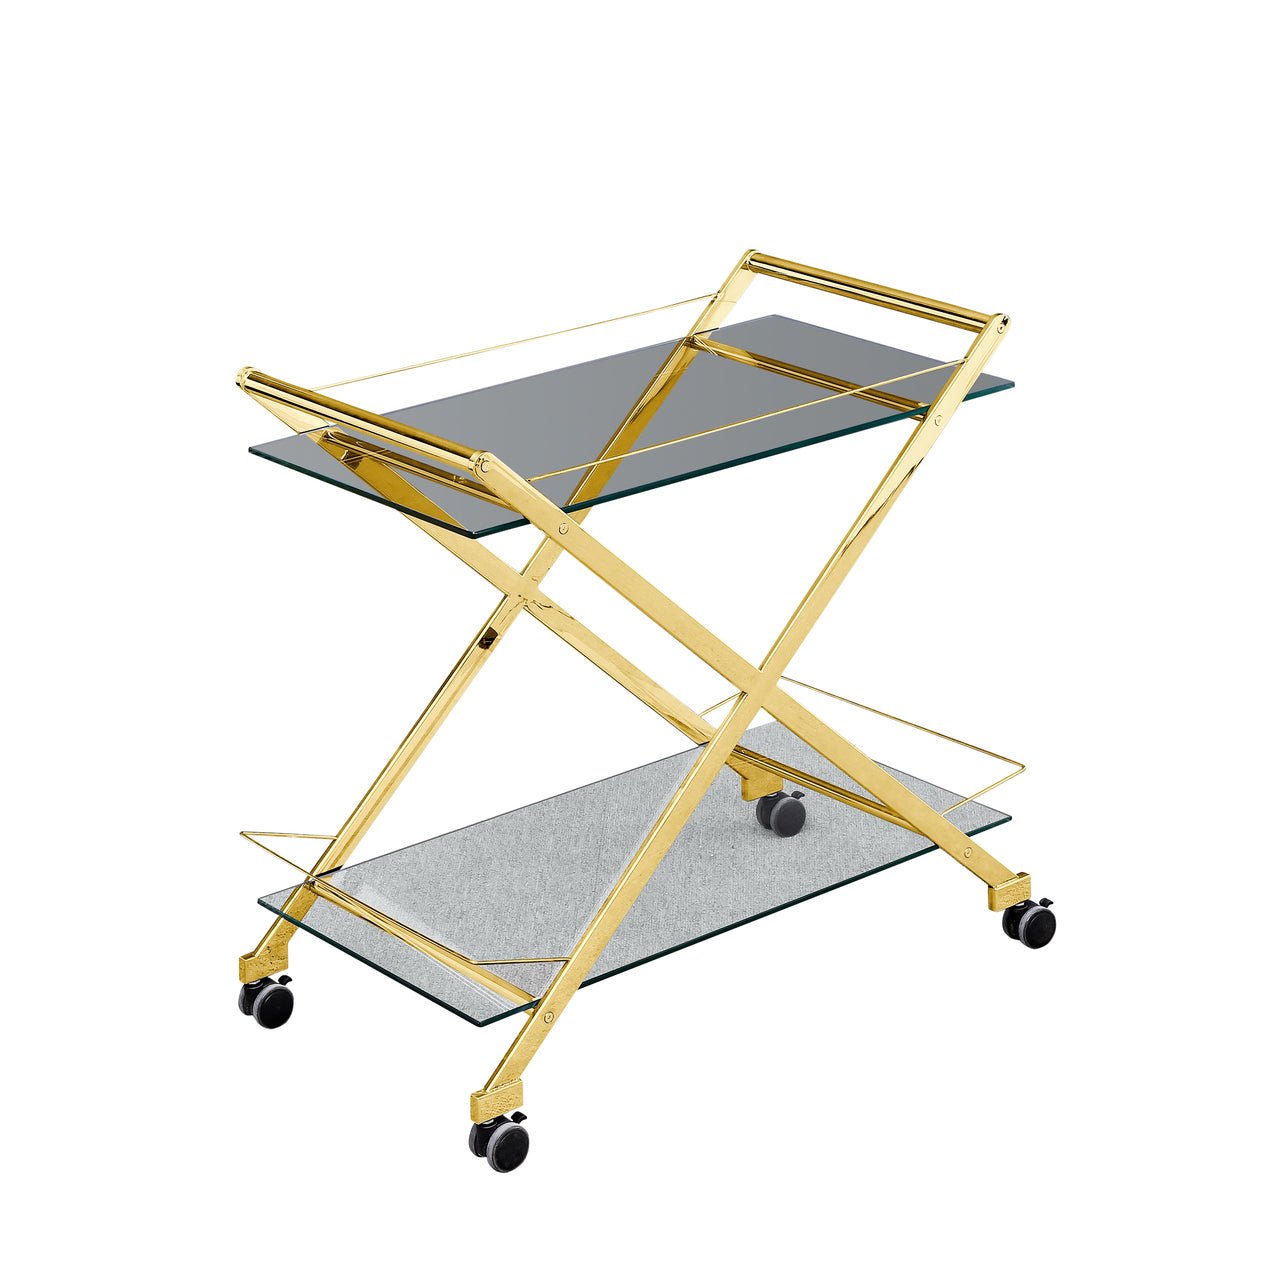 "TWO TIER 31"" ROLLING BAR CART, GOLD - Casa Muebles"